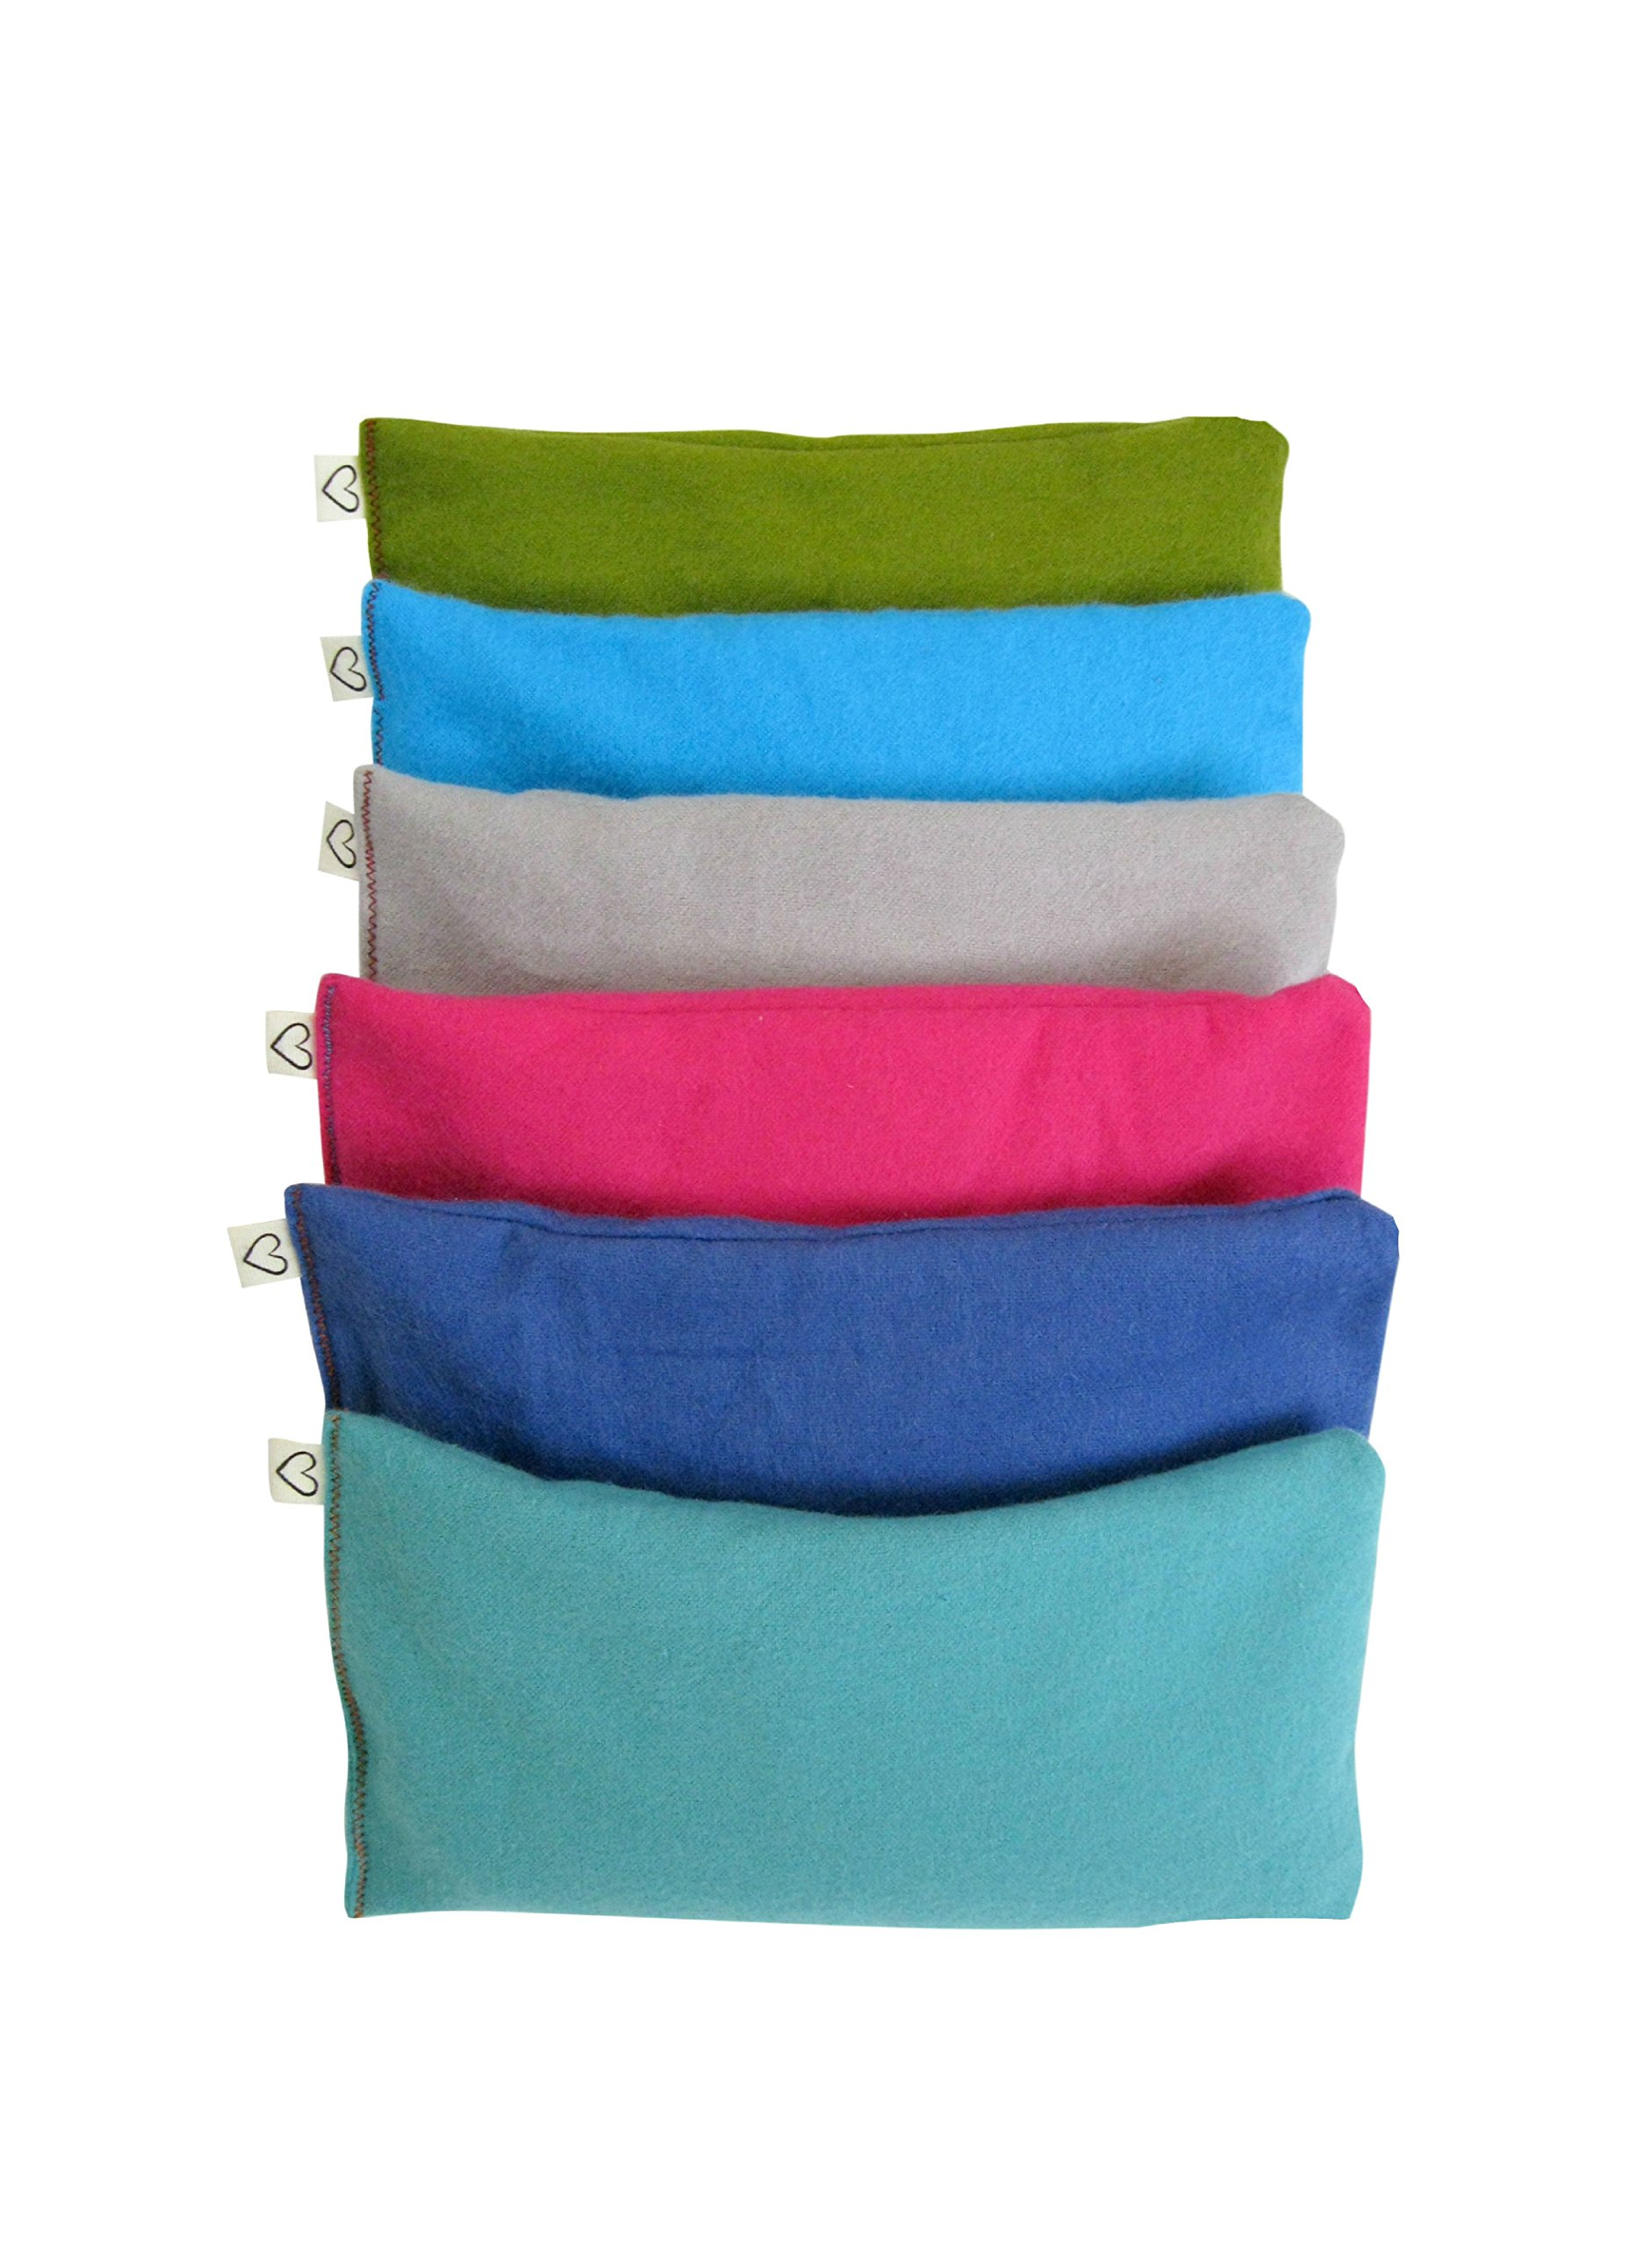 Peacegoods Unscented Organic Flax Seed Eye Pillow - Pack of (6) - Soft Cotton Flannel 4 x 8.5 - Pink Green Purple Gray Fuschia Aqua Turquoise Blue by Peacegoods (Image #9)